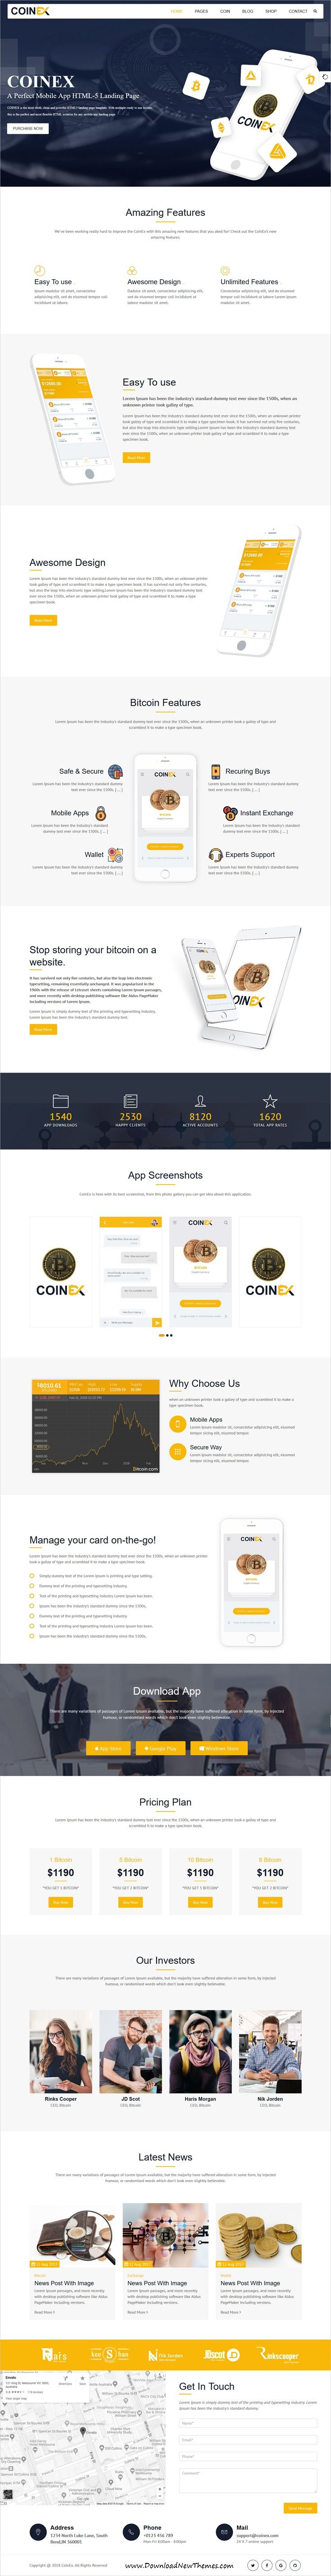 coinex ico bitcoin and crypto currency html template. Black Bedroom Furniture Sets. Home Design Ideas